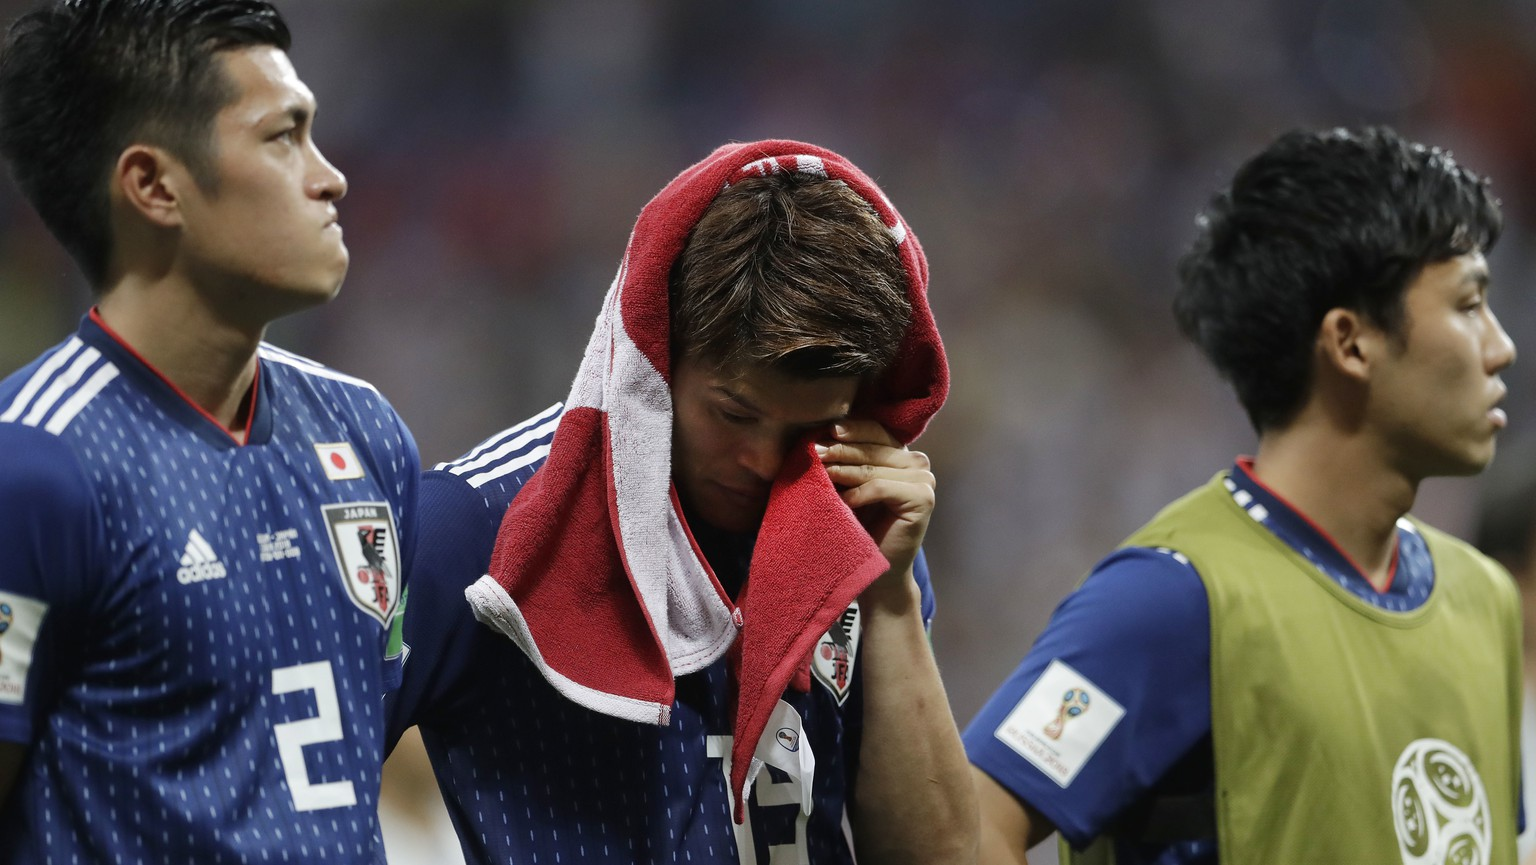 Japan's disappointed Hiroki Sakai drys a tear with a shirt after losing the round of 16 match between Belgium and Japan at the 2018 soccer World Cup in the Rostov Arena, in Rostov-on-Don, Russia, Monday, July 2, 2018. (AP Photo/Petr David Josek)